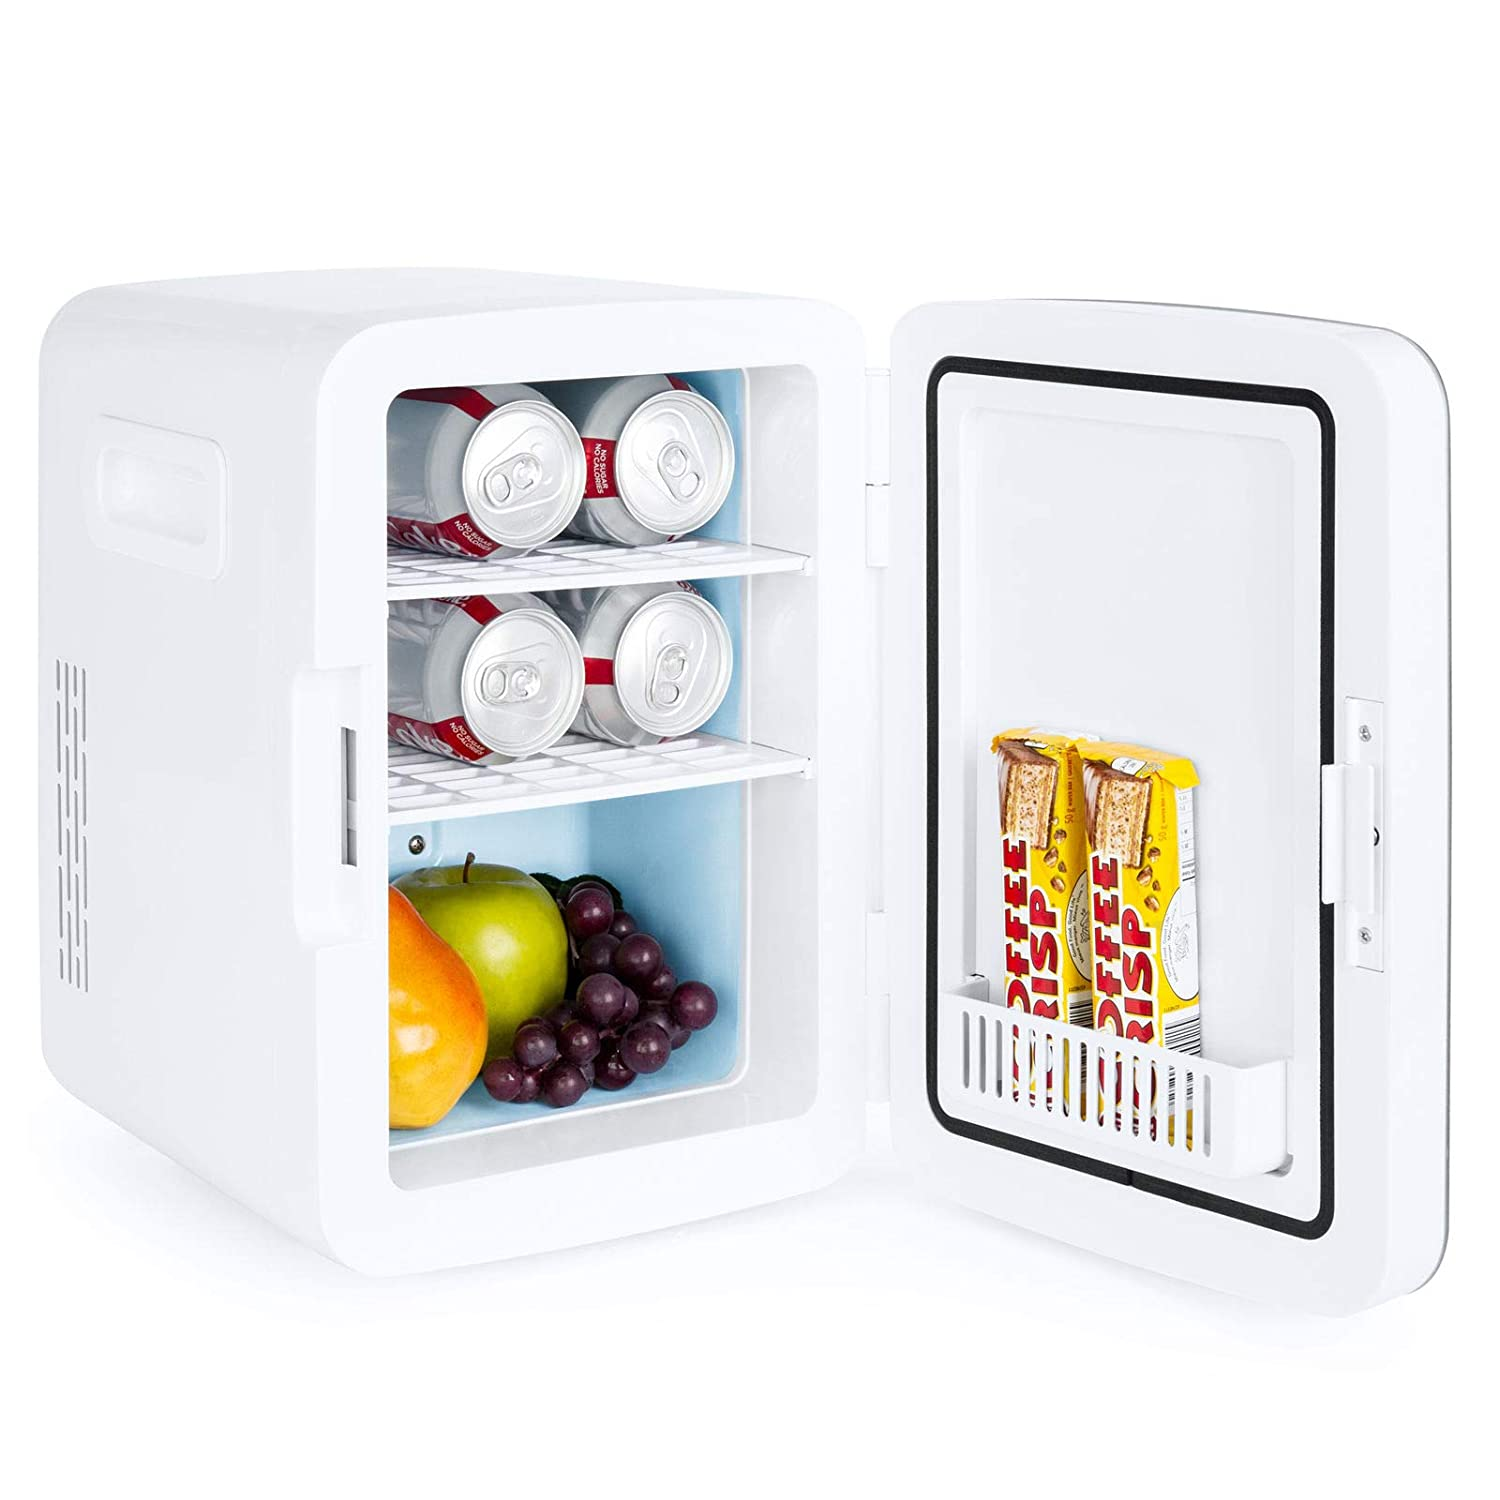 Your Personal Small Refrigerator For Cans Comes With 12v Cigar Powe Cooler For Your Car Or Home With Internal Electric Inverter For Ac-dc Use Set Of 2 Portable Mini Cooler Fridge Color Blue /& Pink